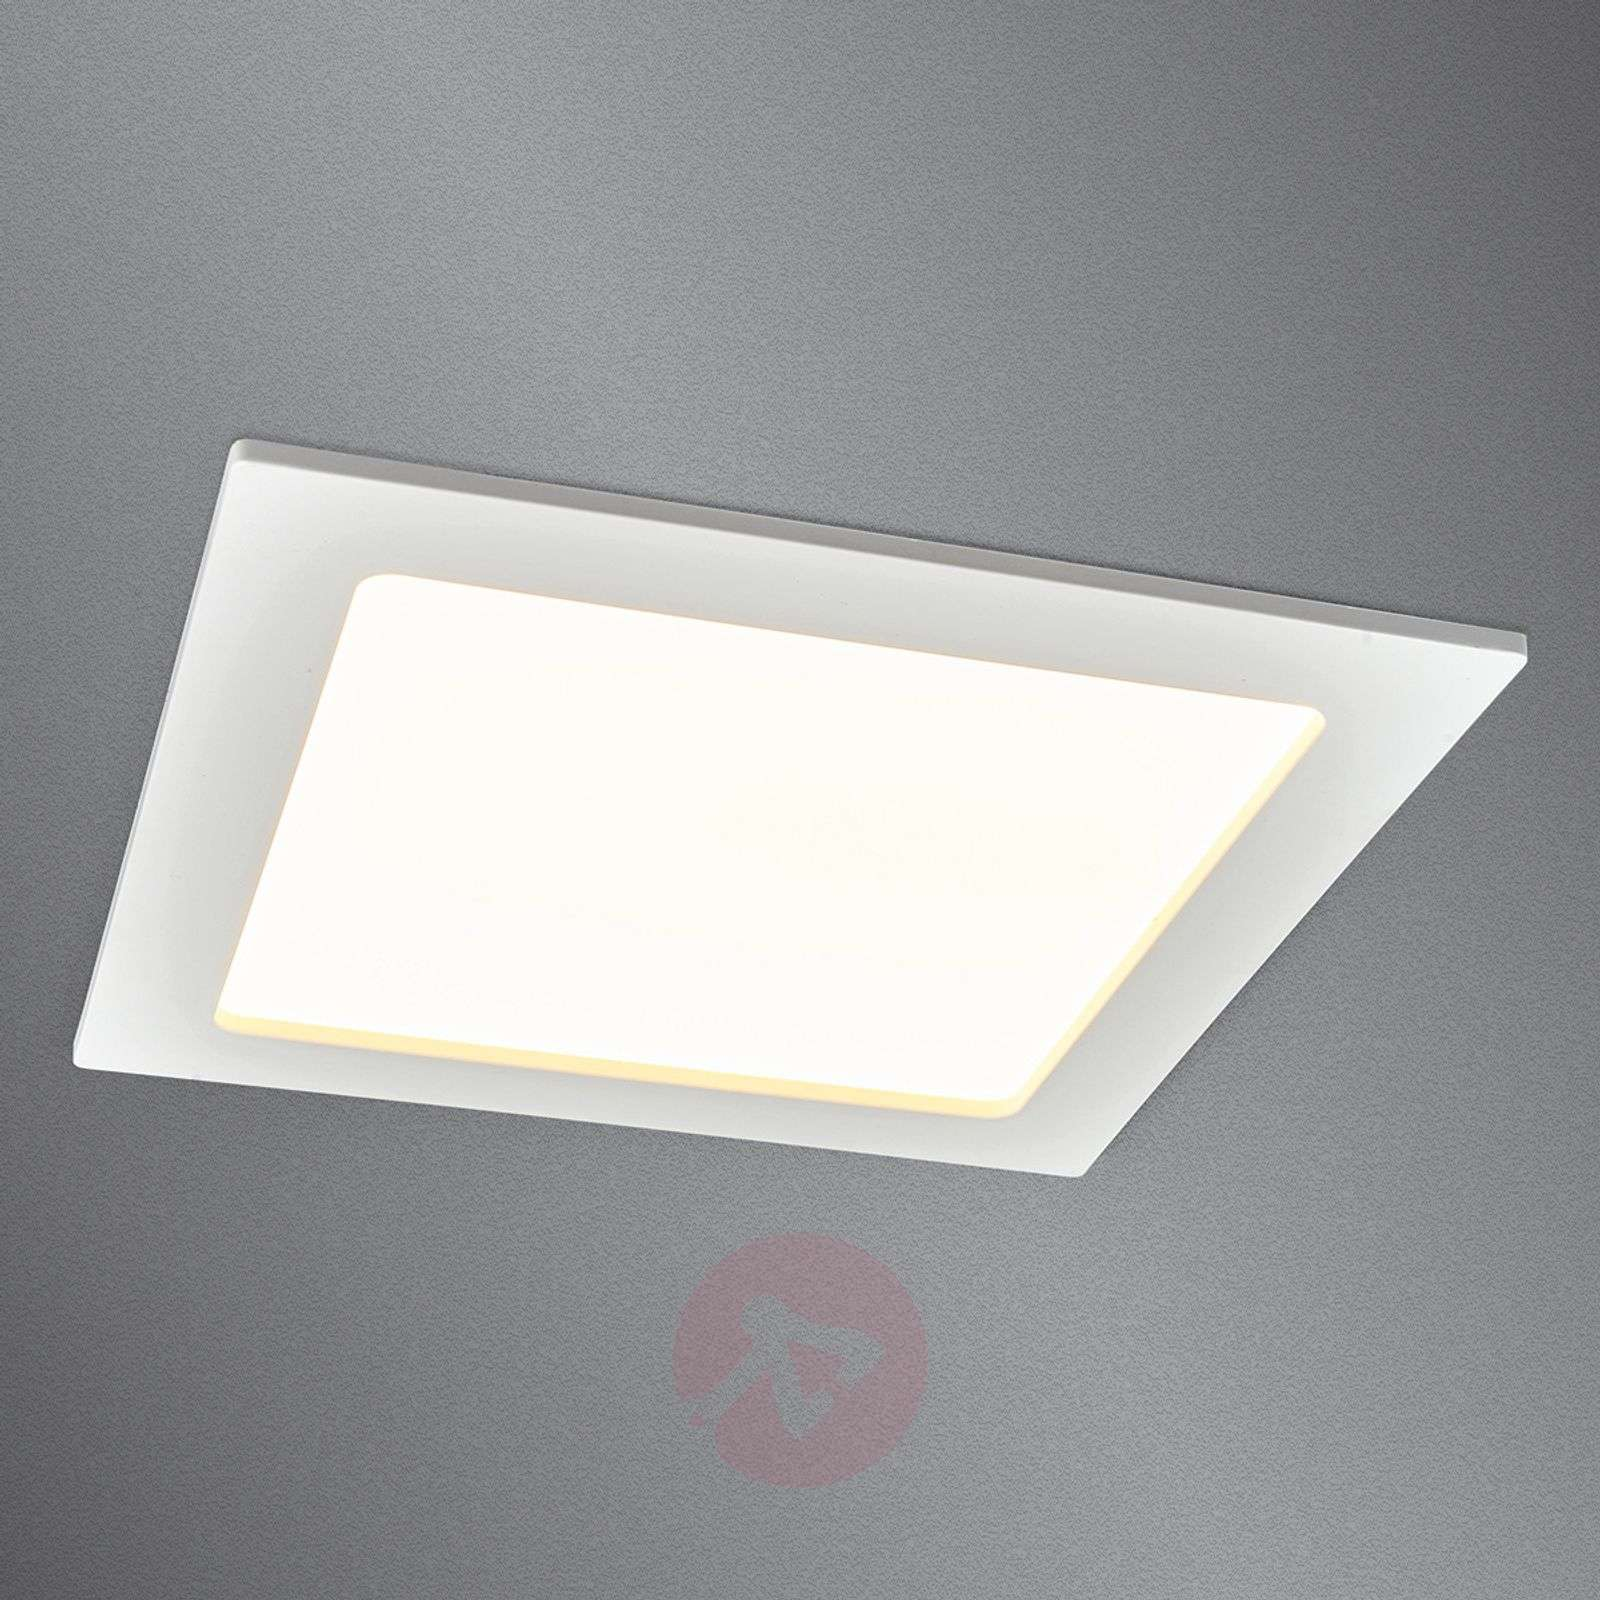 Led ceiling light feva for bathrooms ip44 16 w 9978018 020